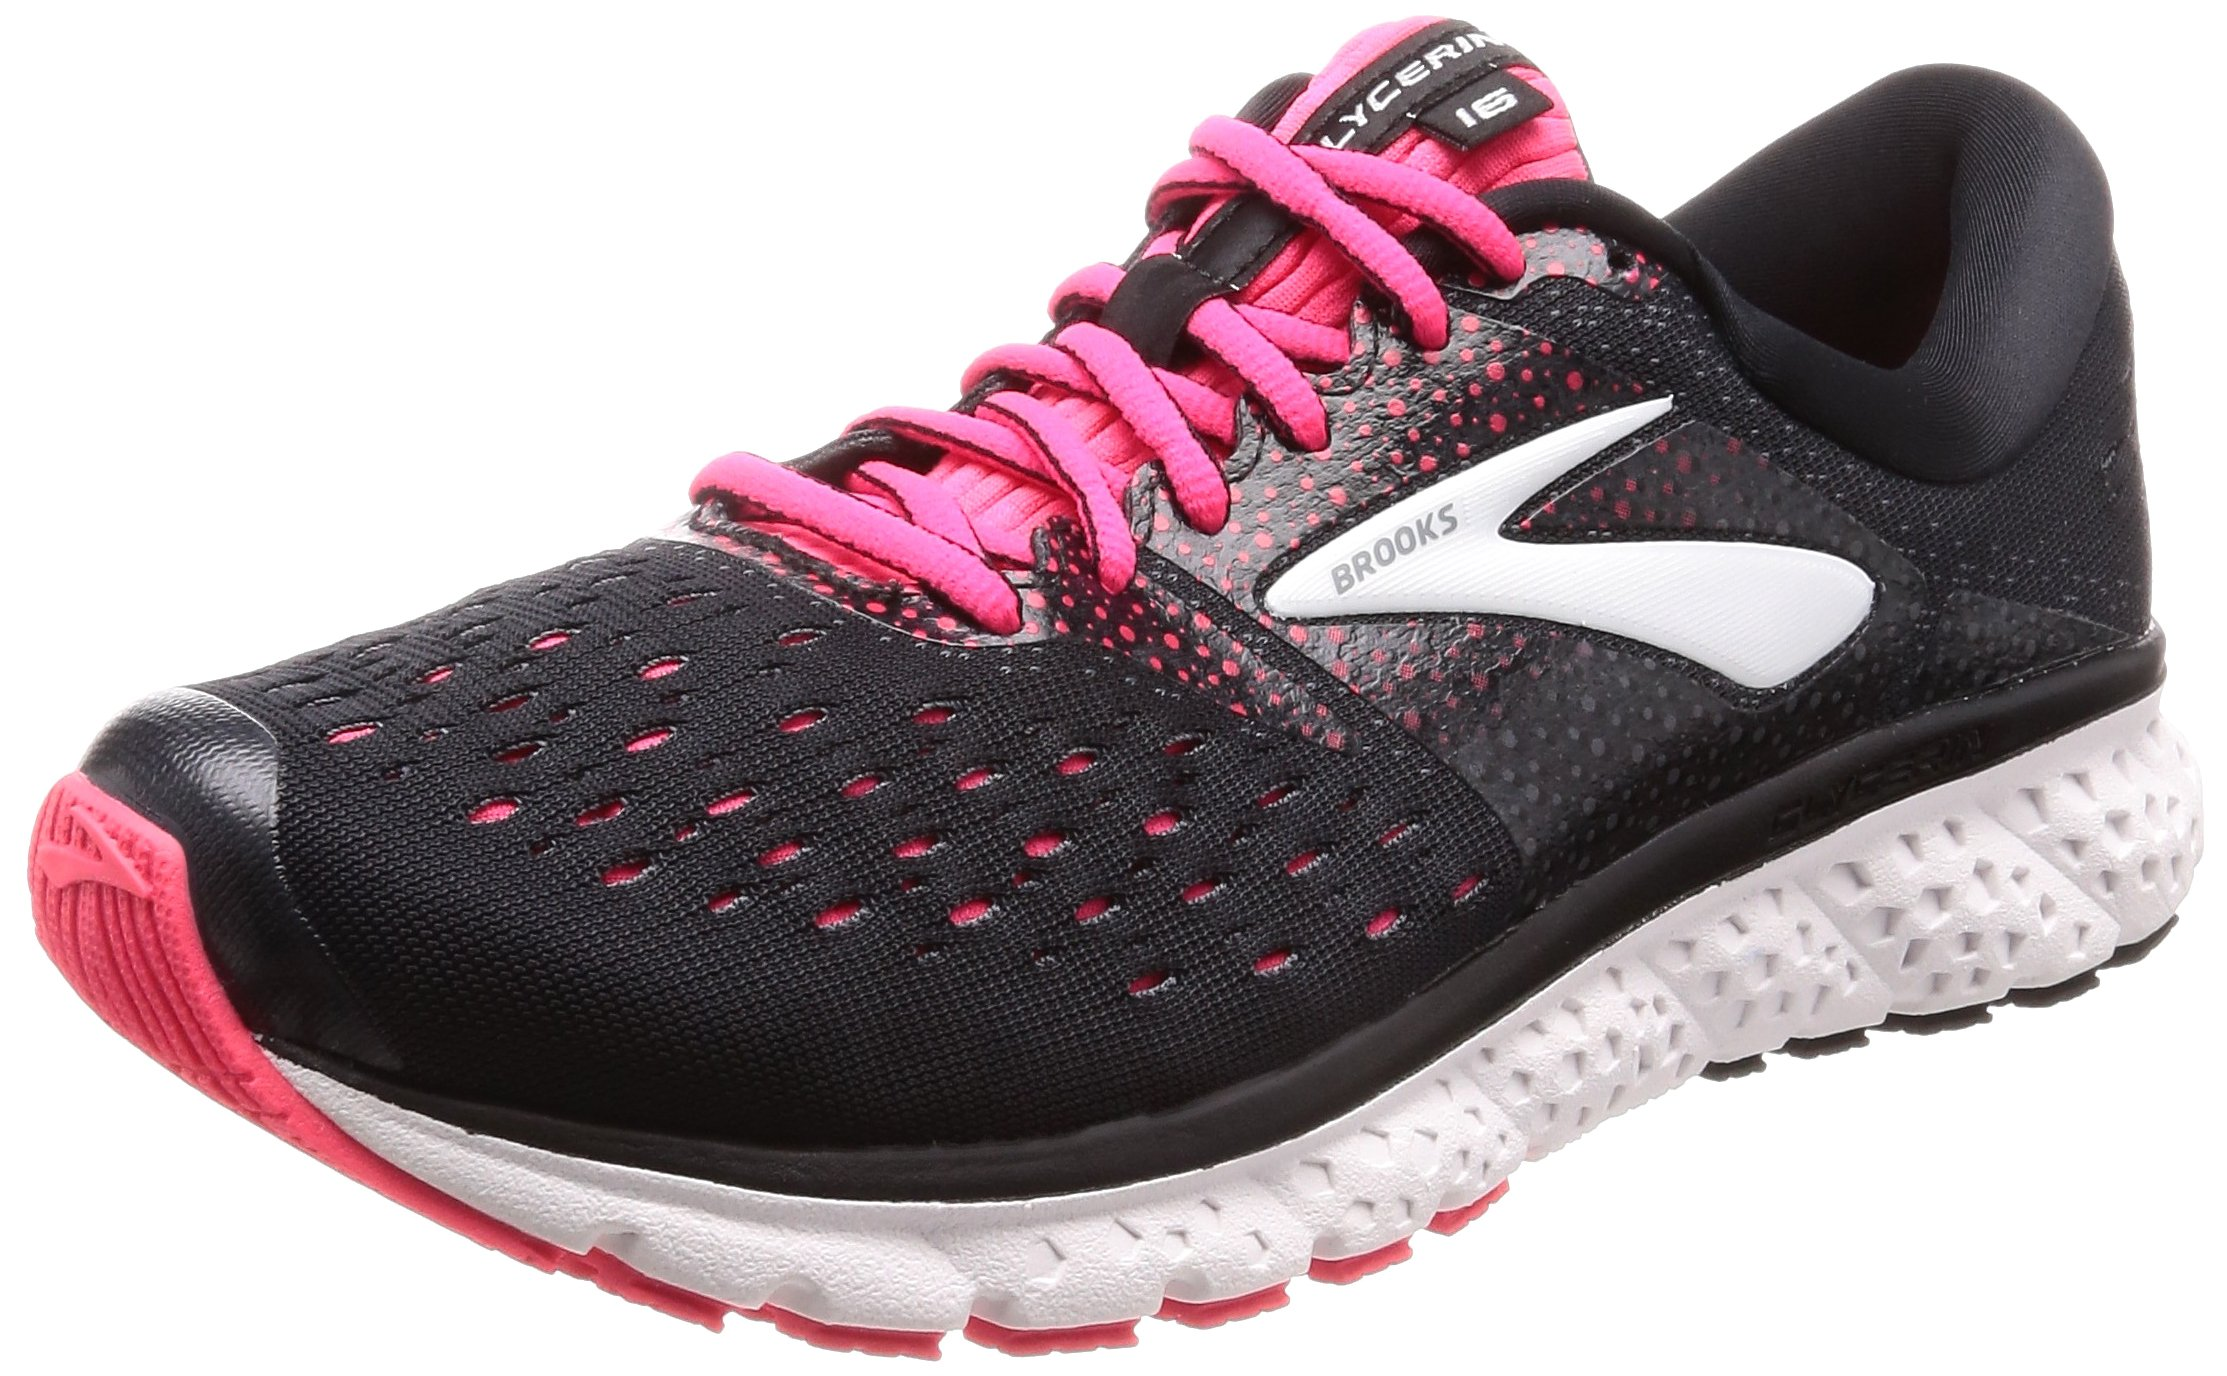 Brooks Womens Glycerin 16 - Black/Pink/Grey - D - 11.0 by Brooks